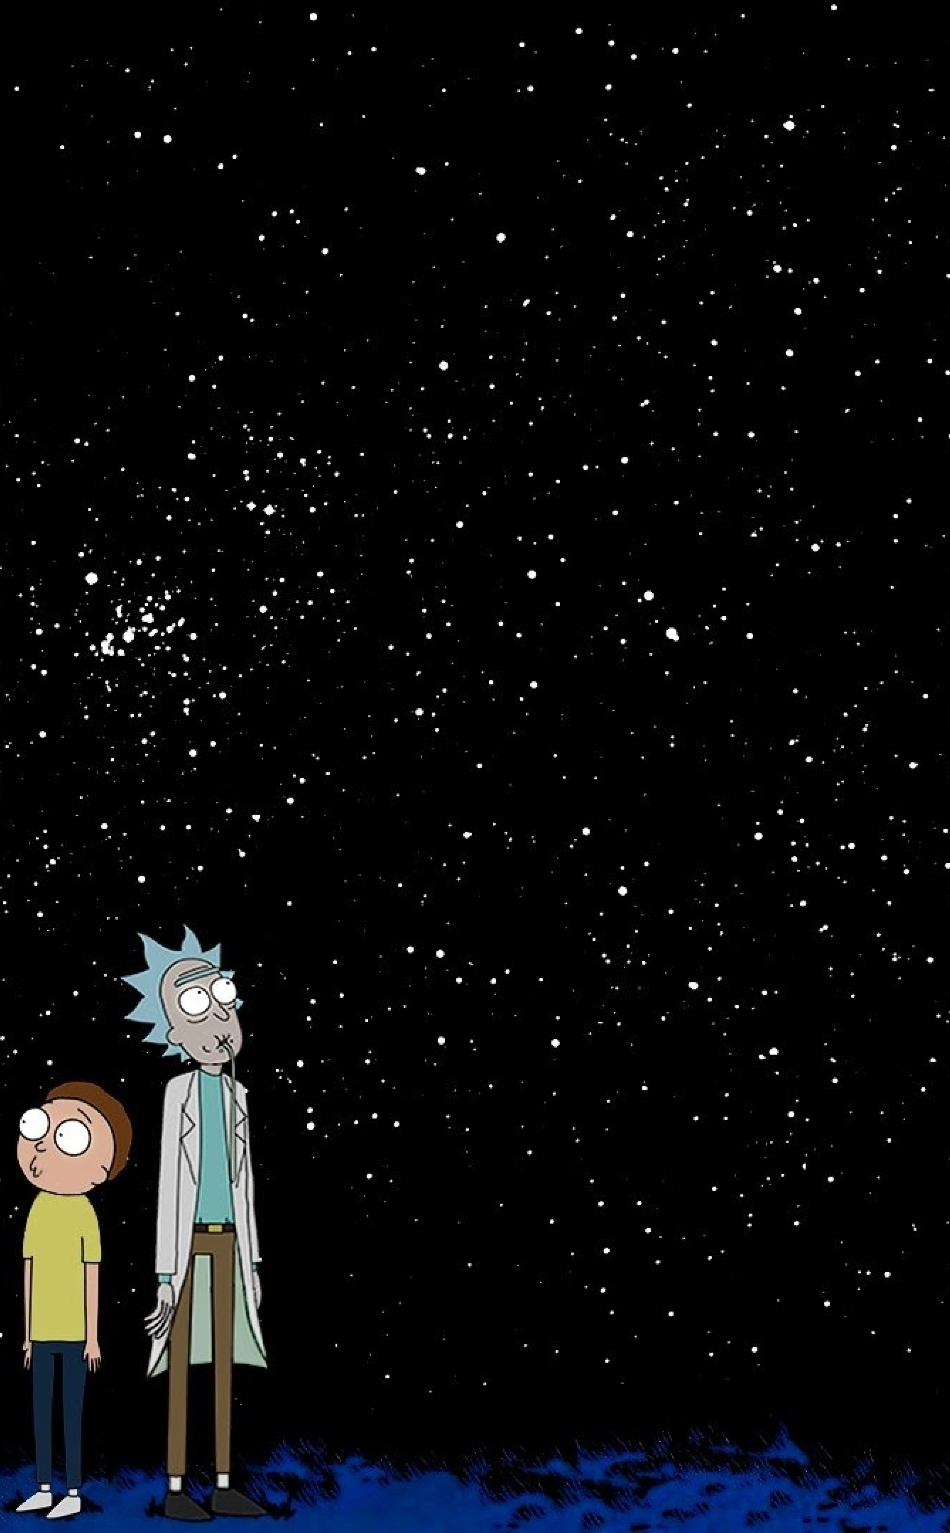 Simple Wallpaper High Quality Rick And Morty - rick-and-morty-space_60071_950x1534  Photograph_874100.jpg